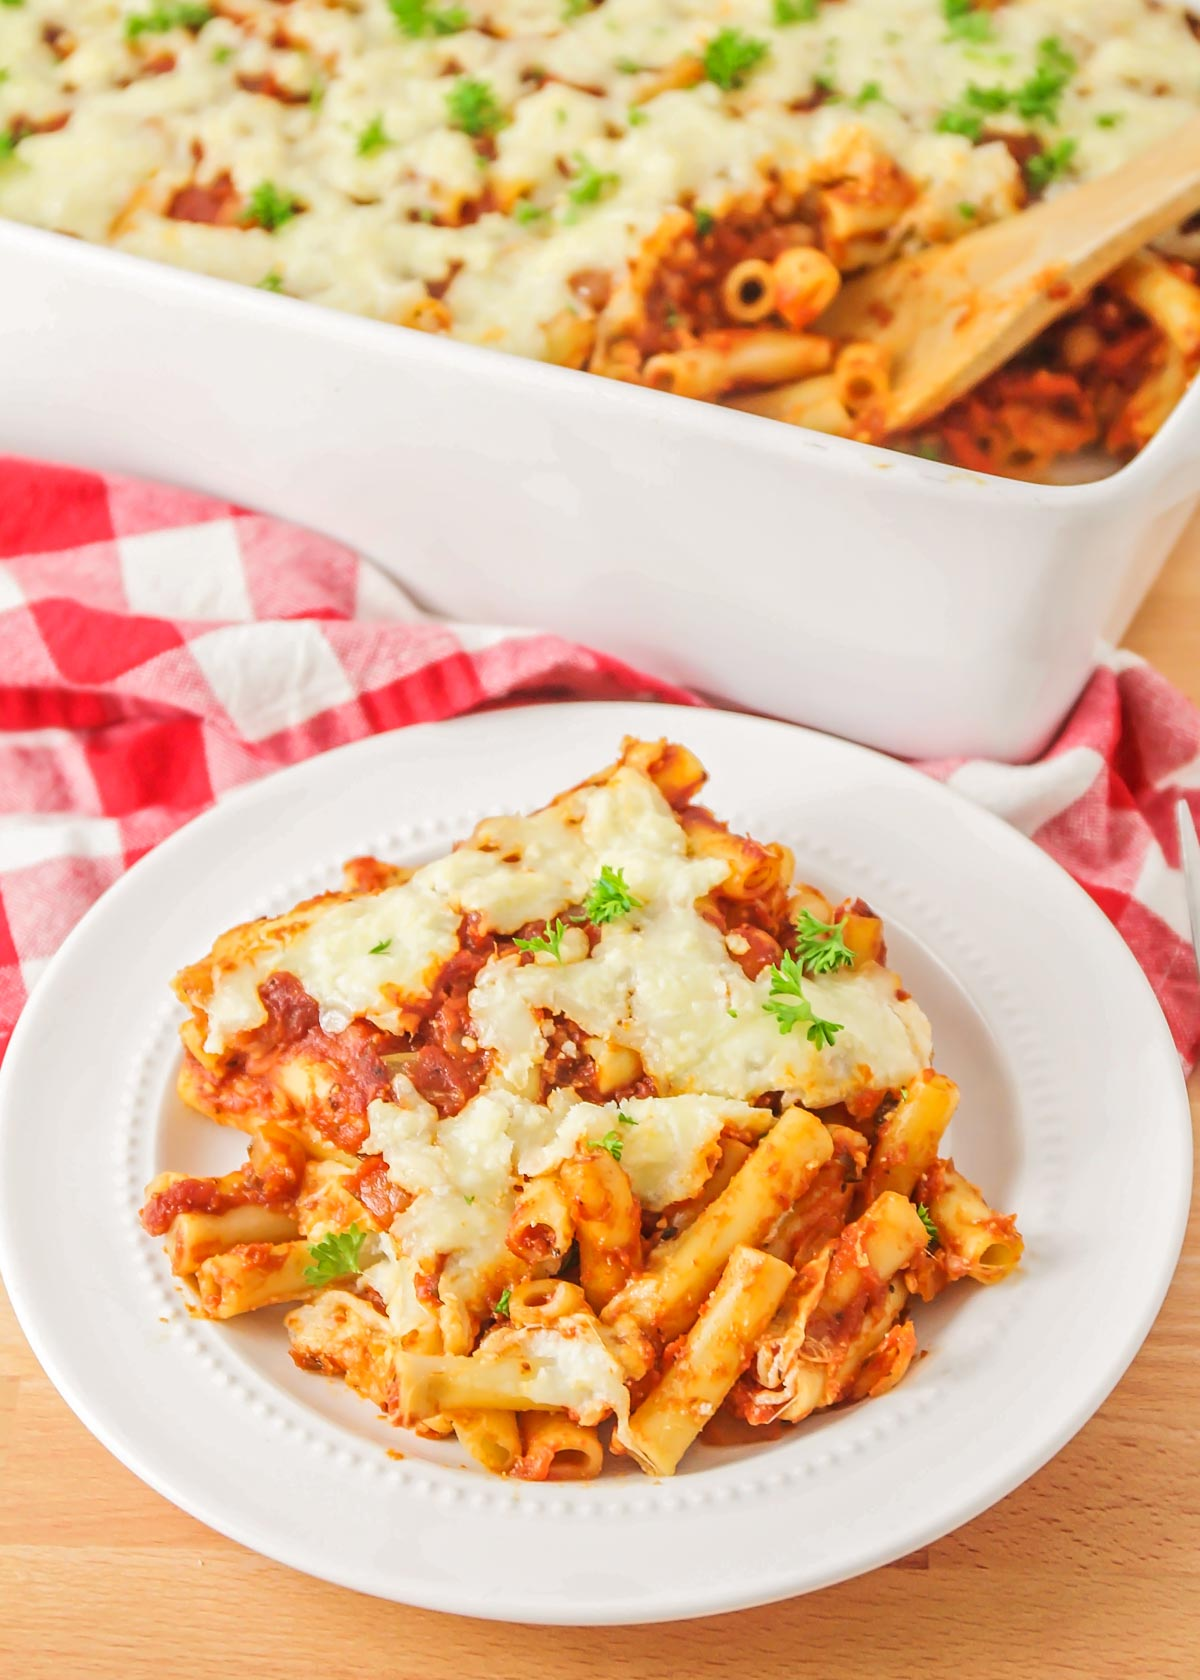 A scoop of meatless baked ziti on a white plate